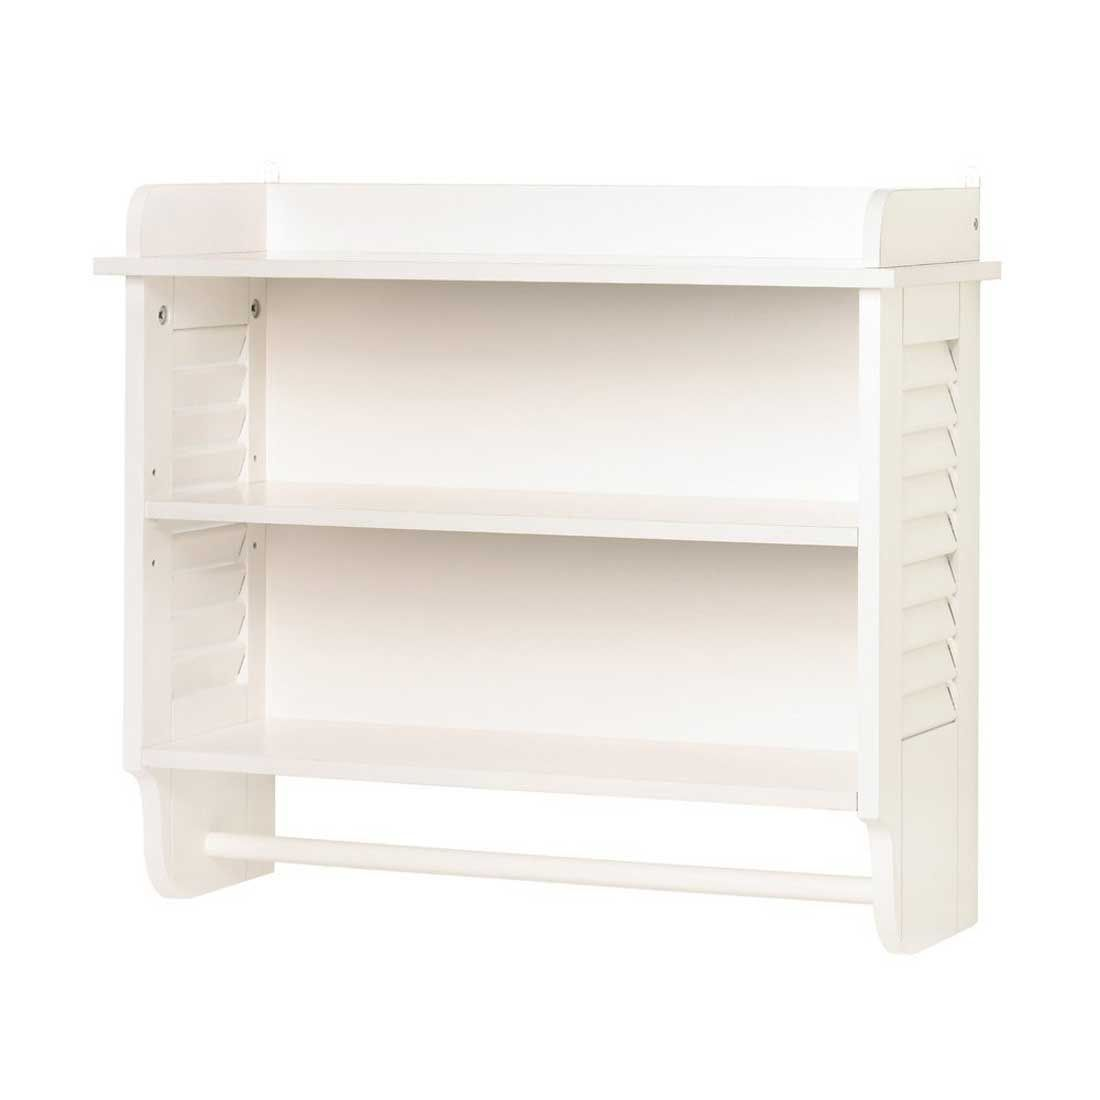 Gifts & Decor Nantucket White Wall Towel Shelf Holder for Home ...